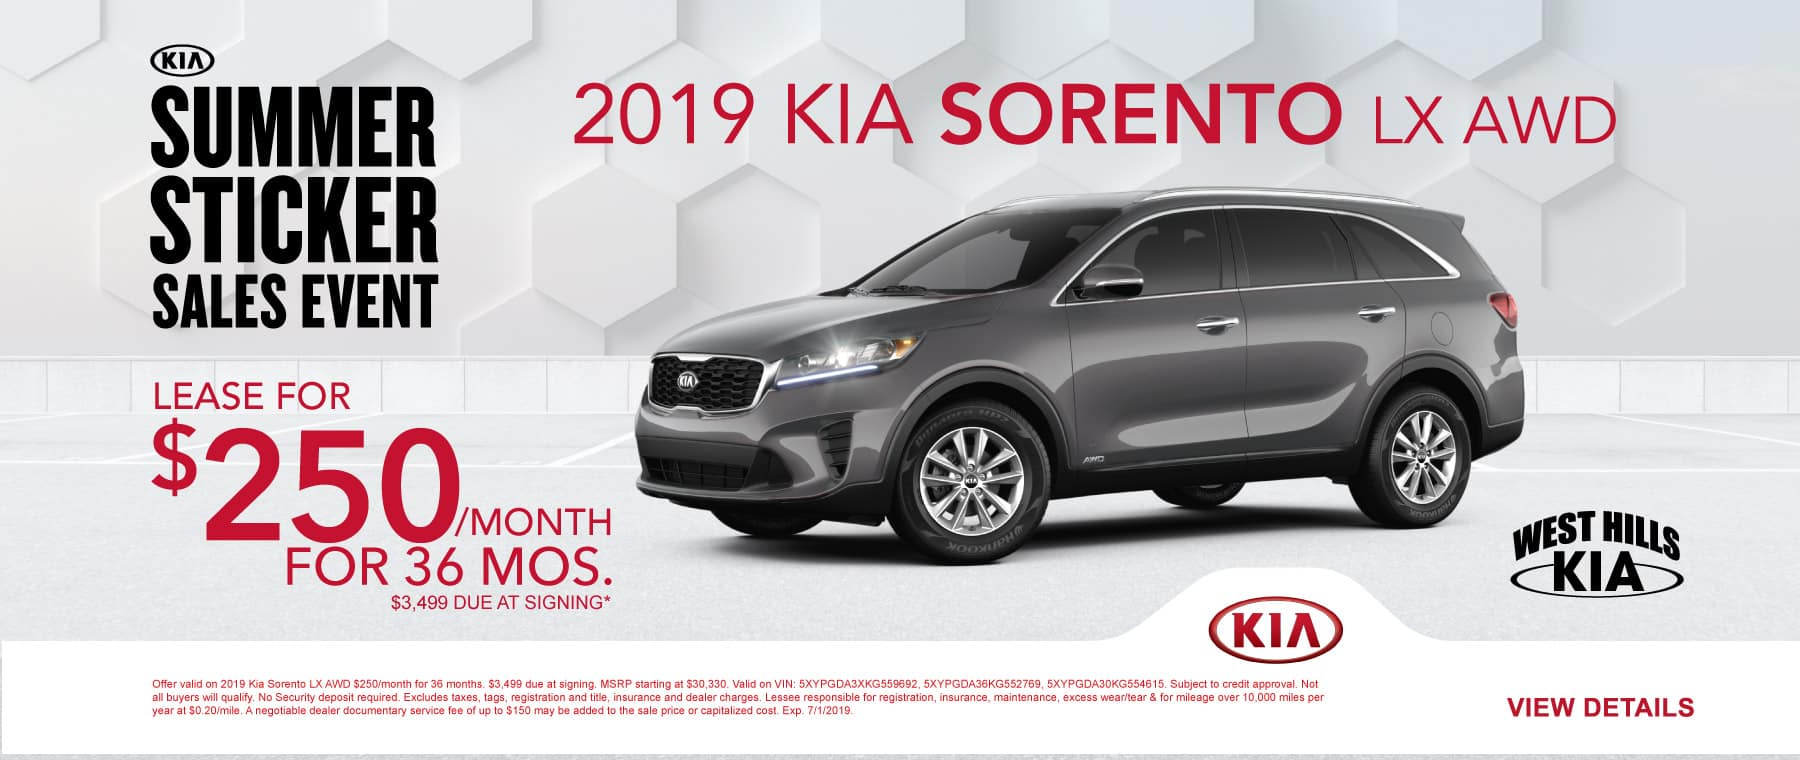 2019 Kia Sorento LX AWD  $250/month for 36 months  $3,499 Due at Signing   Offer valid on 2019 Kia Sorento LX AWD $250/month for 36 months. $3,499 due at signing. MSRP starting at $30,330. Valid on VIN: 5XYPGDA3XKG559692, 5XYPGDA36KG552769, 5XYPGDA30KG554615. Subject to credit approval. Not all buyers will qualify. No Security deposit required. Excludes taxes, tags, registration and title, insurance and dealer charges. Lessee responsible for registration, insurance, maintenance, excess wear/tear & for mileage over 10,000 miles per year at $0.20/mile. A negotiable dealer documentary service fee of up to $150 may be added to the sale price or capitalized cost. Exp. 7/1/2019.